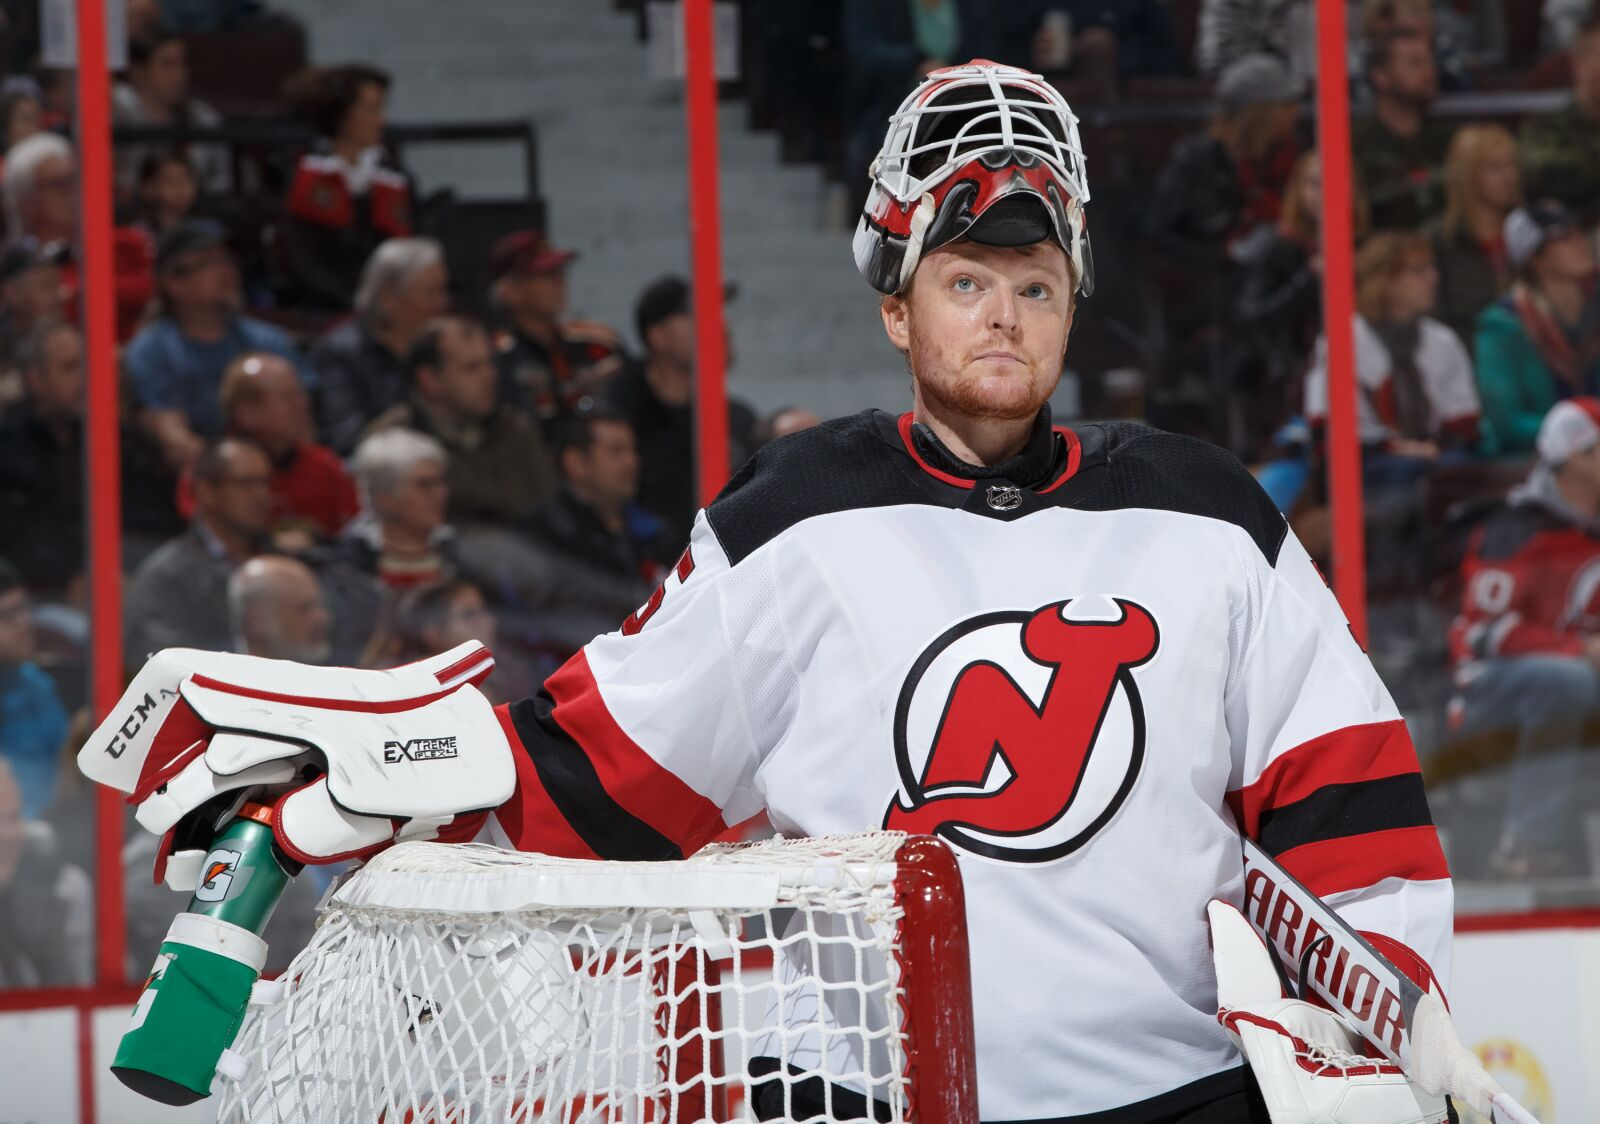 OTTAWA, ON - NOVEMBER 6: Cory Schneider #35 of the New Jersey Devils tends net against the Ottawa Senators at Canadian Tire Centre on November 6, 2018 in Ottawa, Ontario, Canada. (Photo by Andre Ringuette/NHLI via Getty Images)